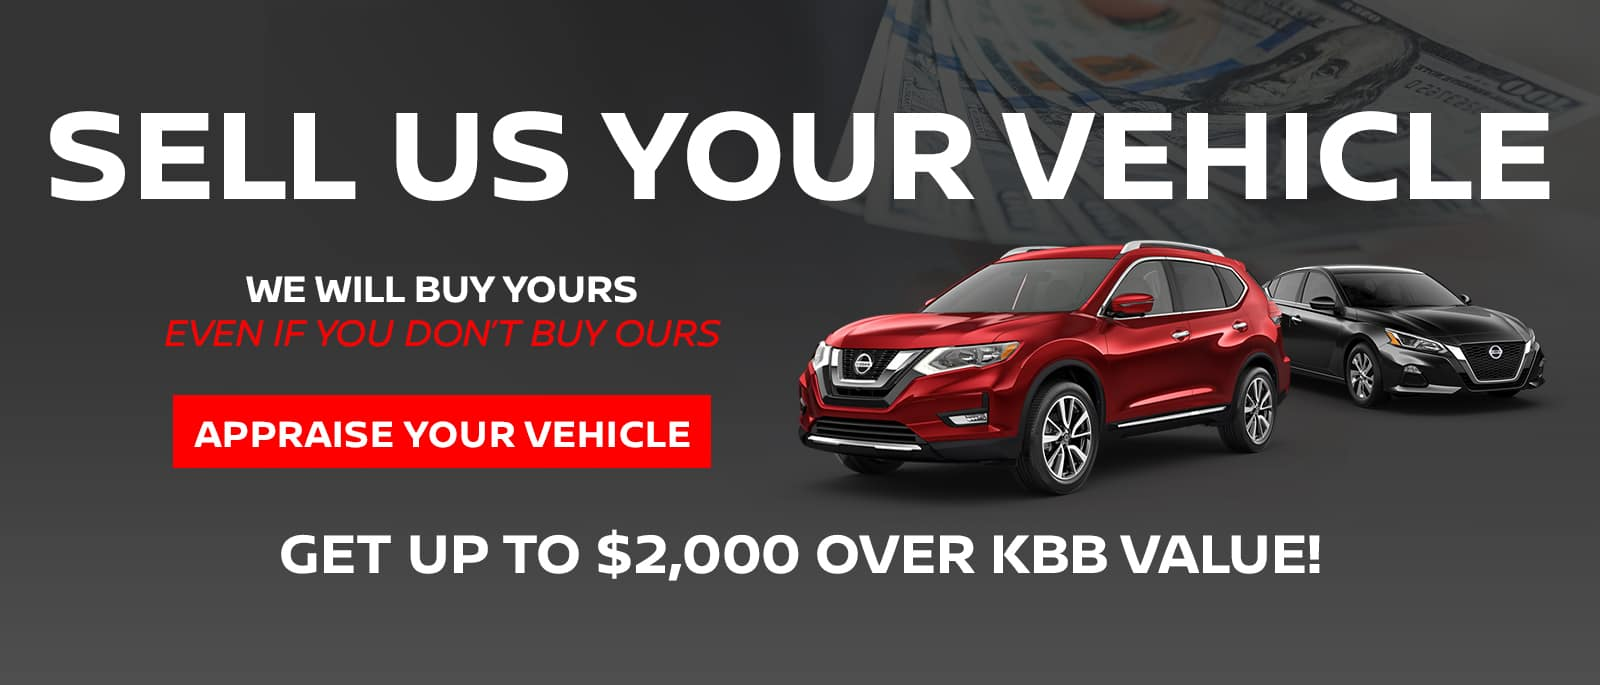 sell-us-your-car-april-2021-2 (1)